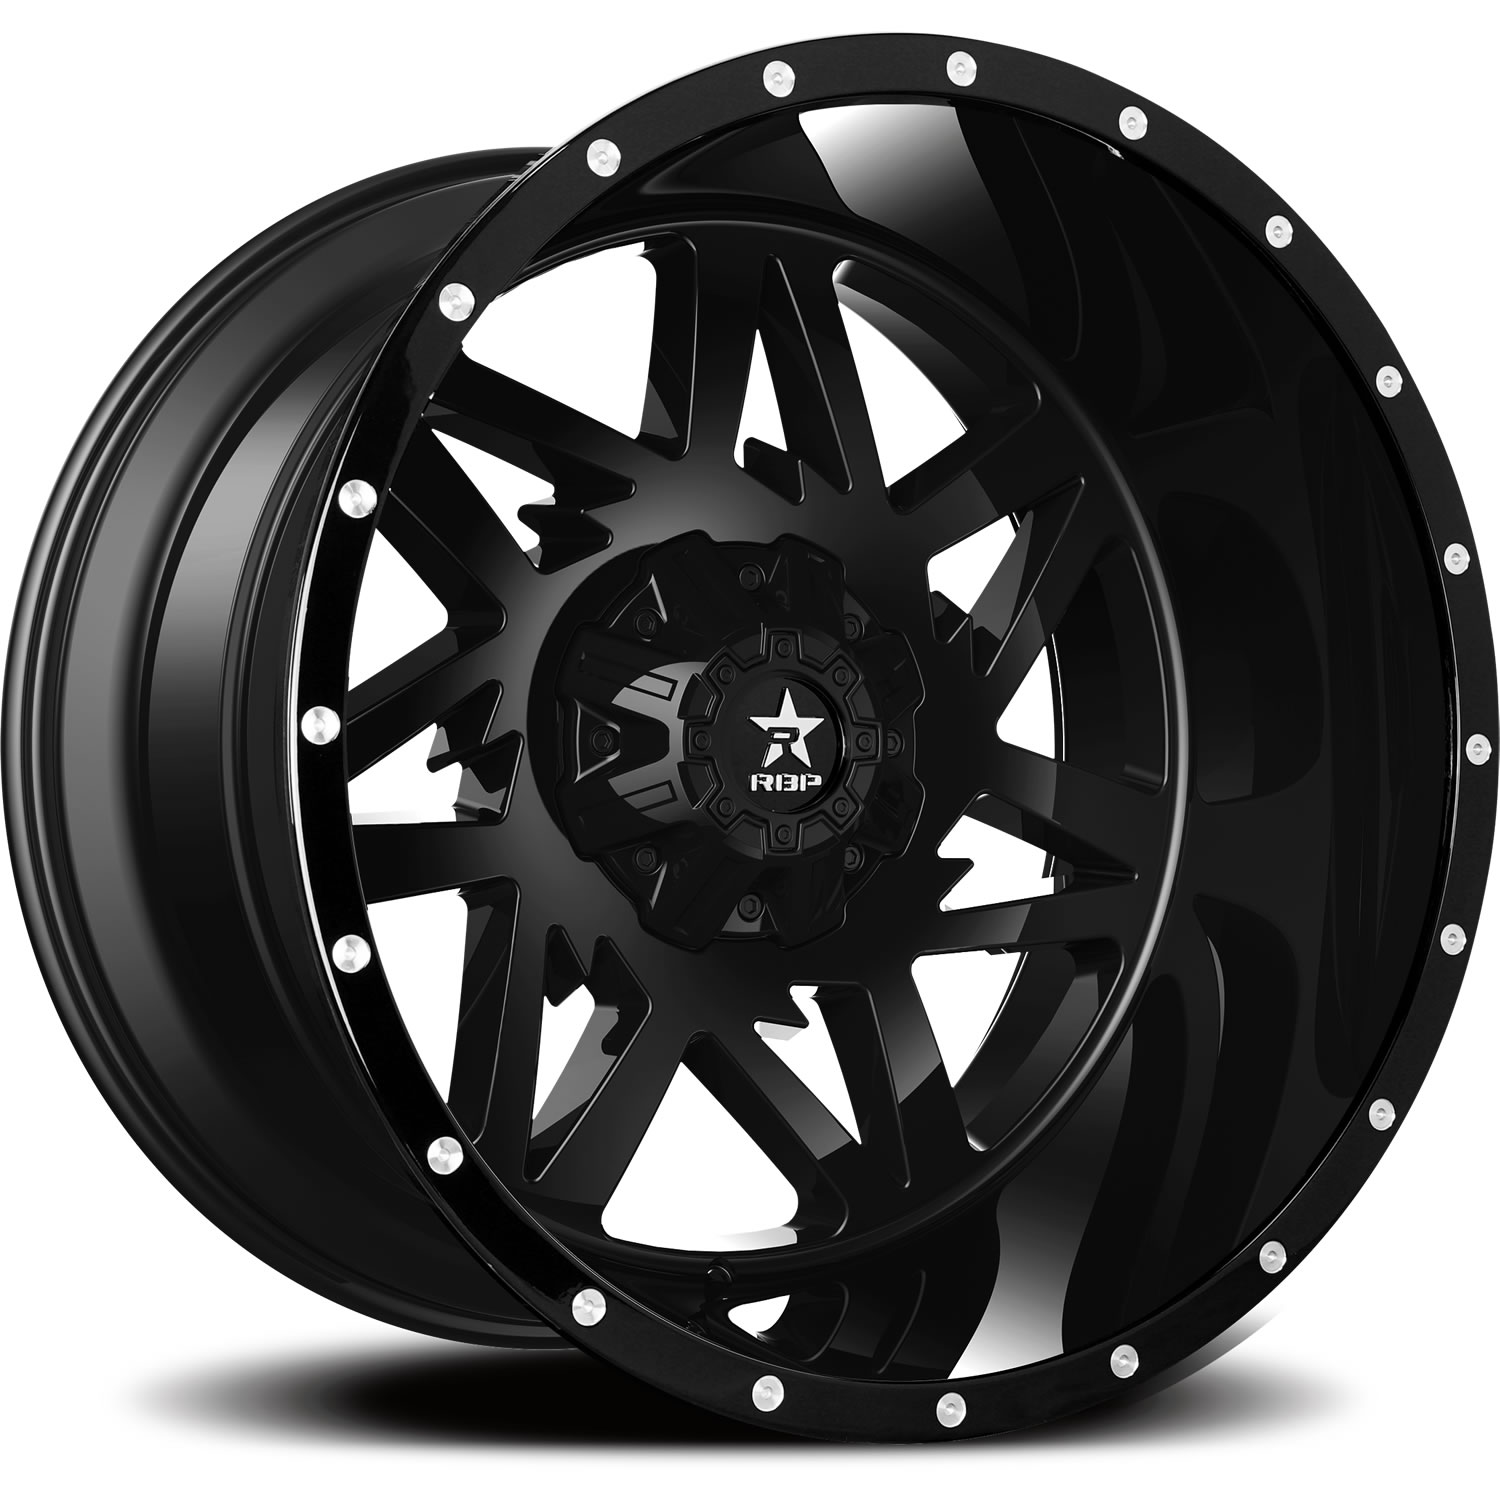 RBP 71R 24x14  76mm | 71R 2414 00 76FB